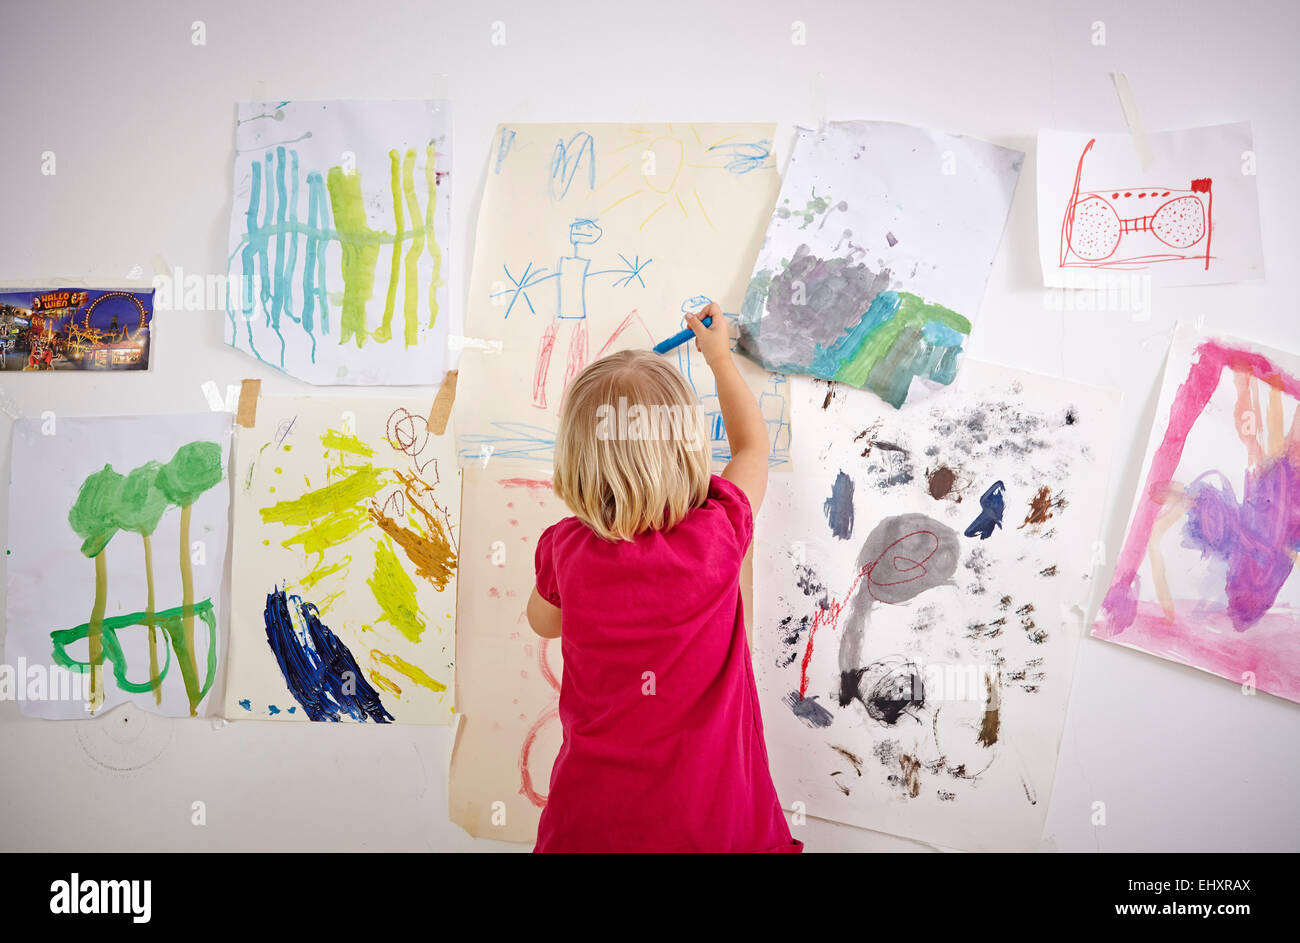 Little girl painting on wall of children's room, rear view - Stock Image